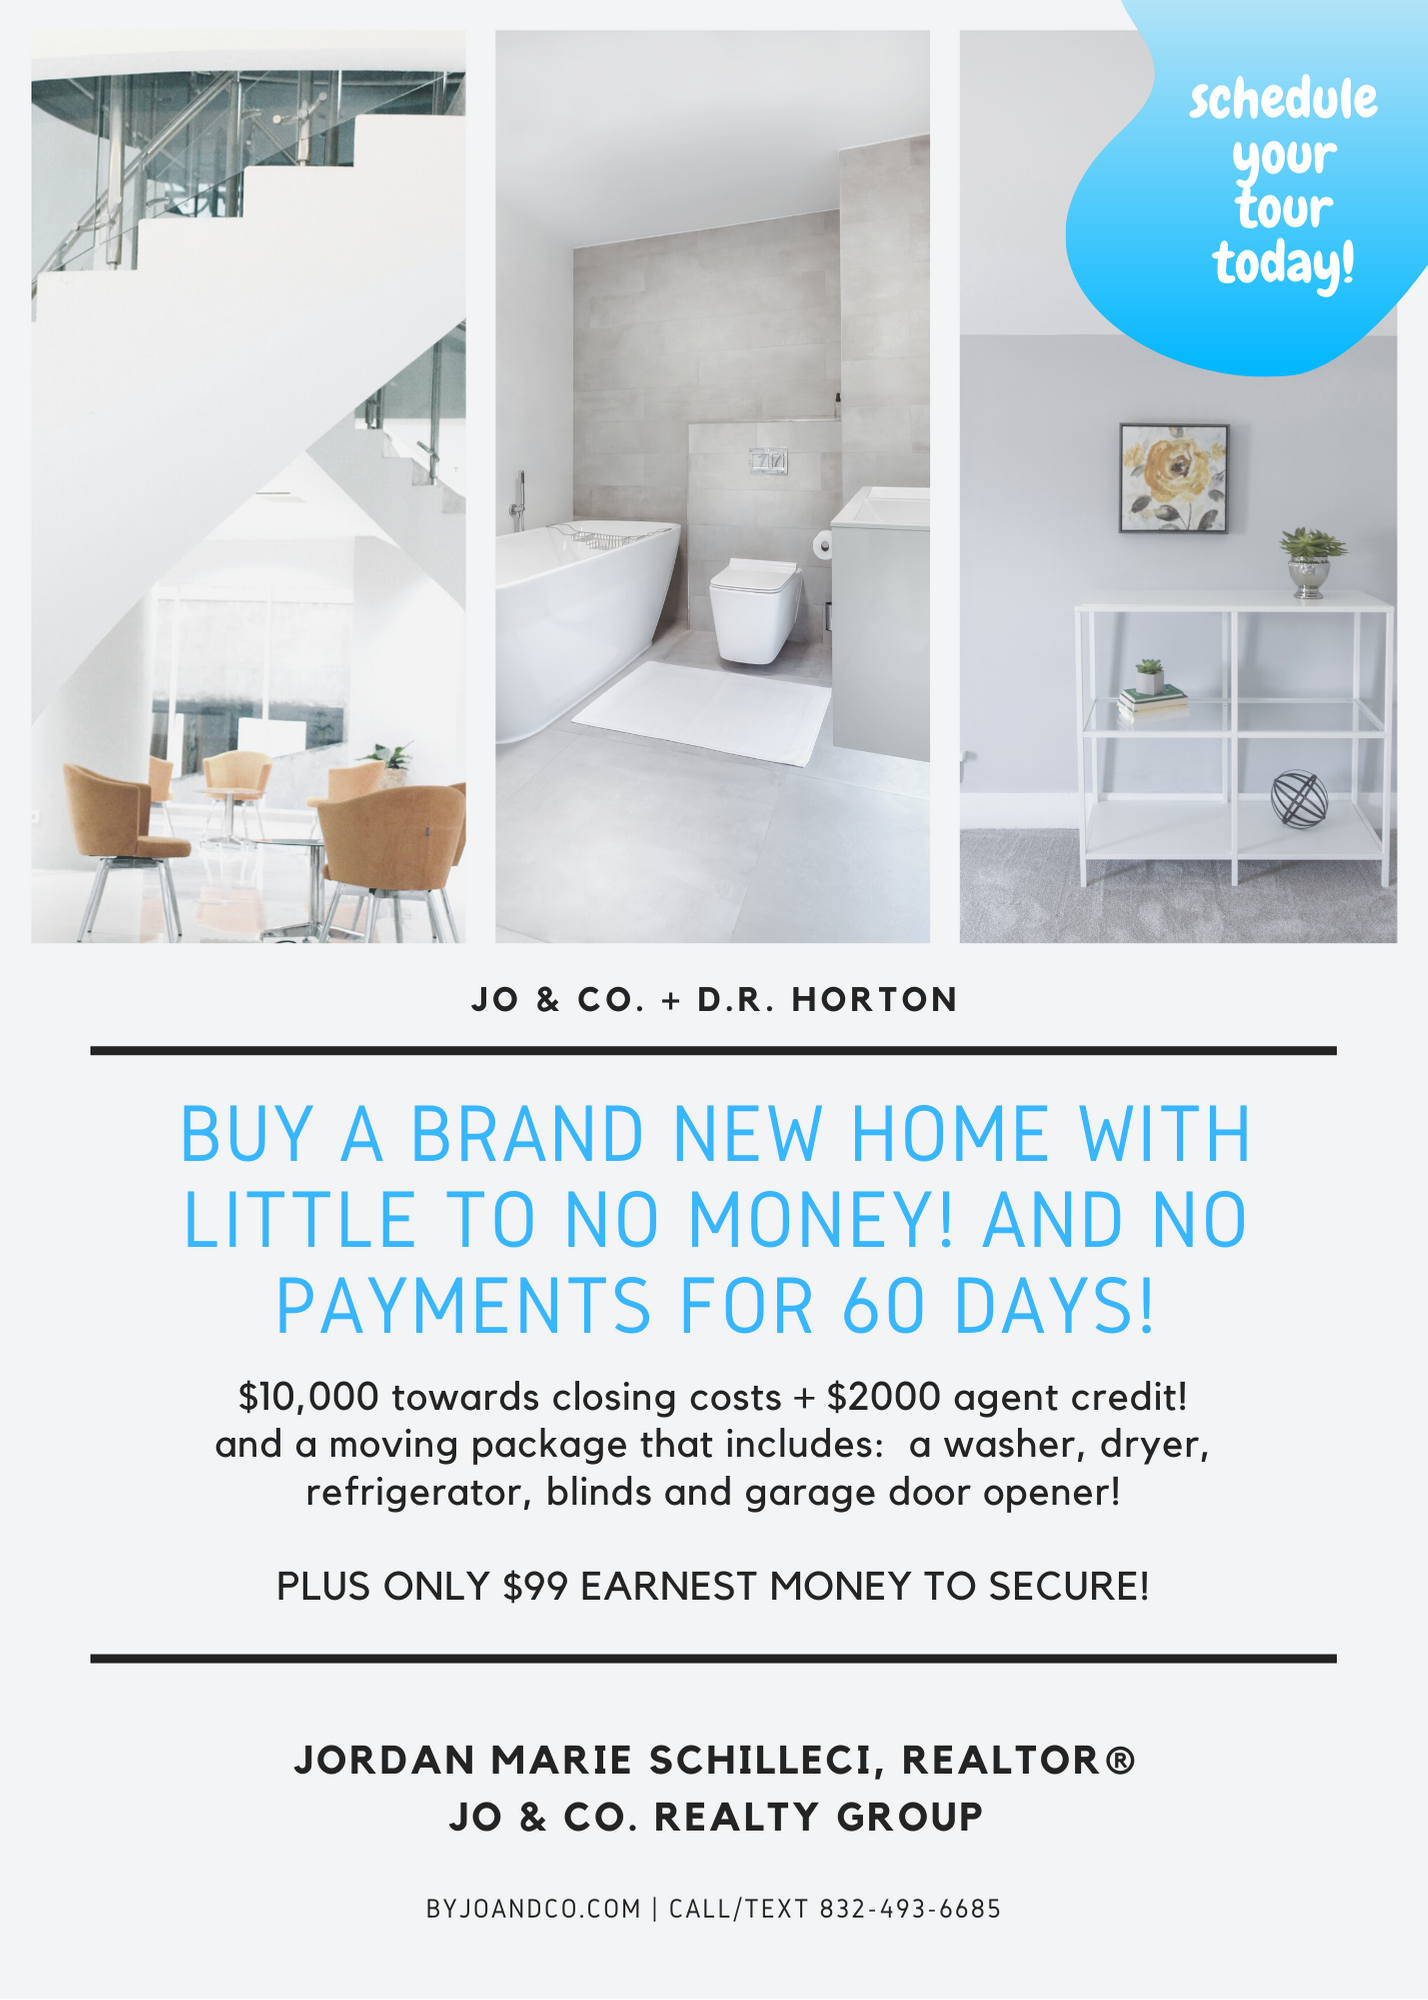 Buy a brand new home with little to no money! and no payments for 60 days!